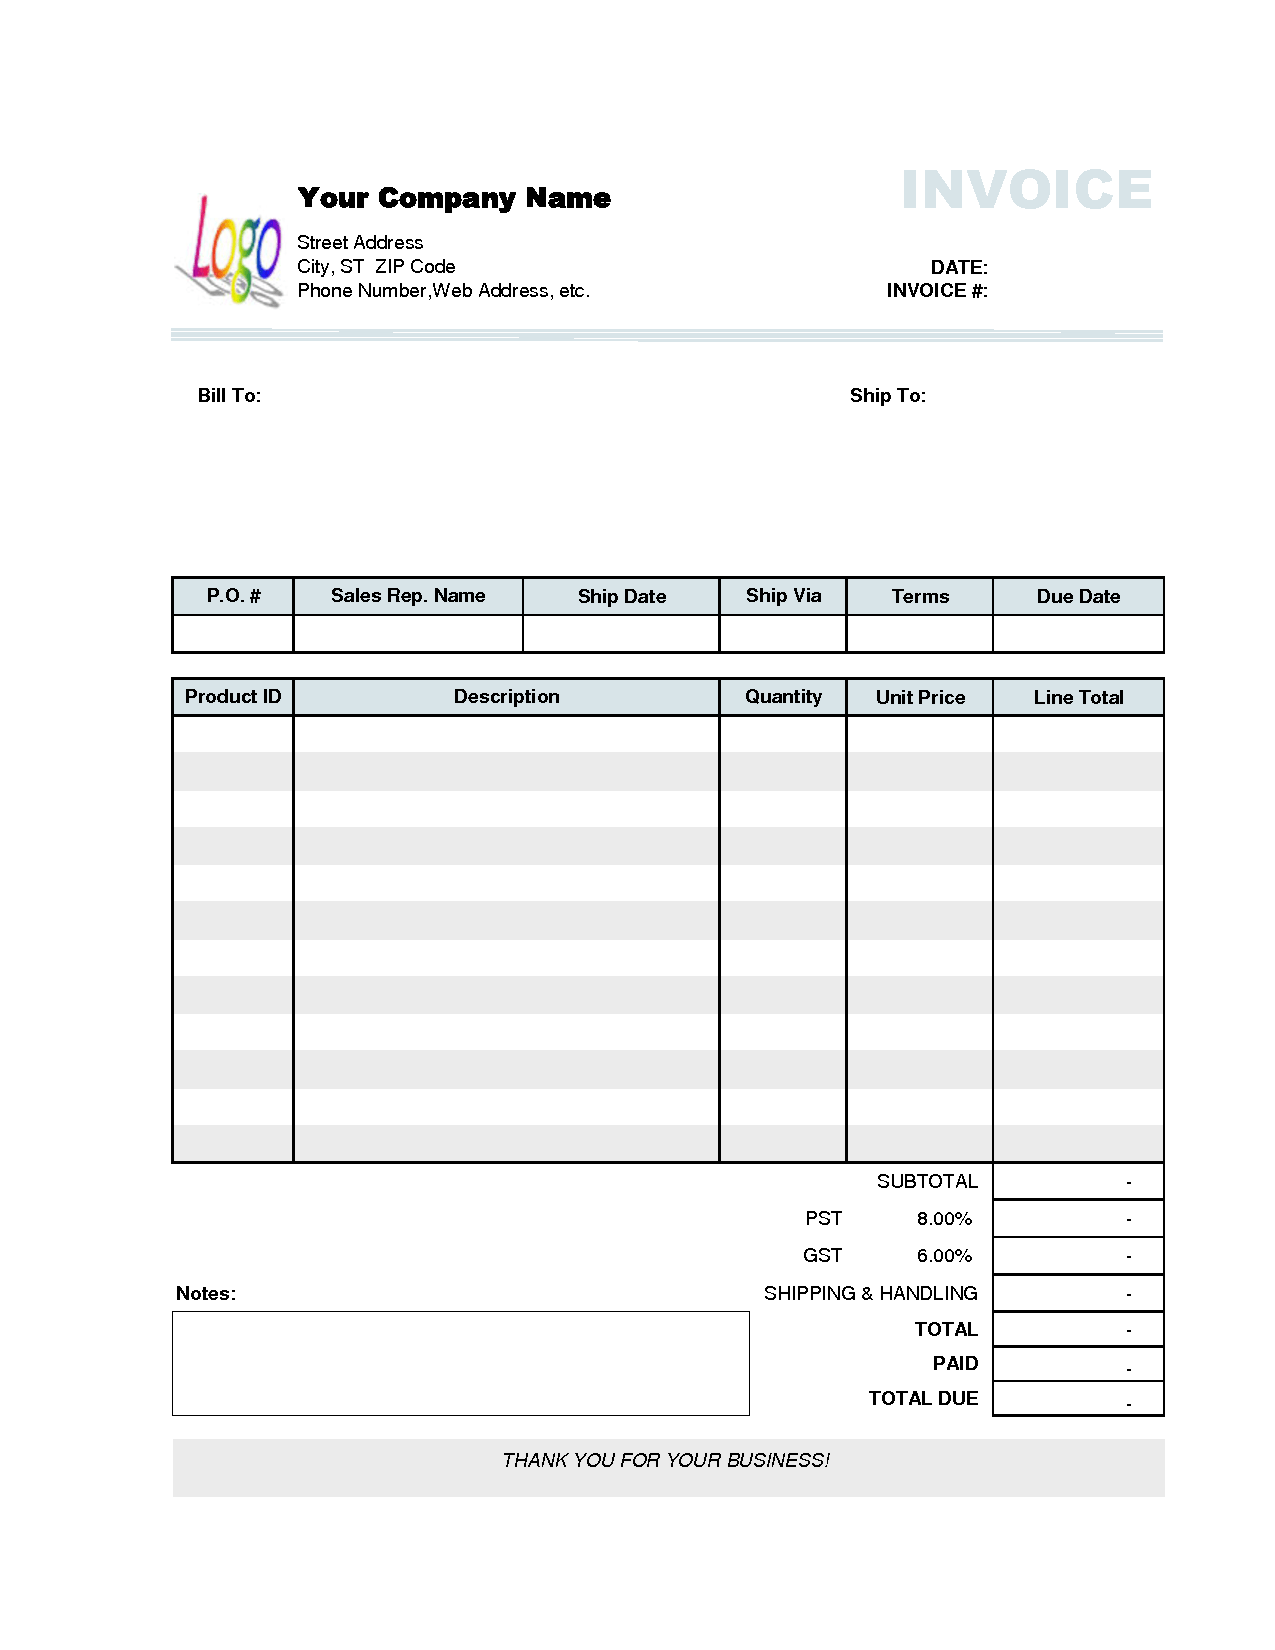 Dental Invoice Sample and therapy Invoice Template Free Firmsinjafo